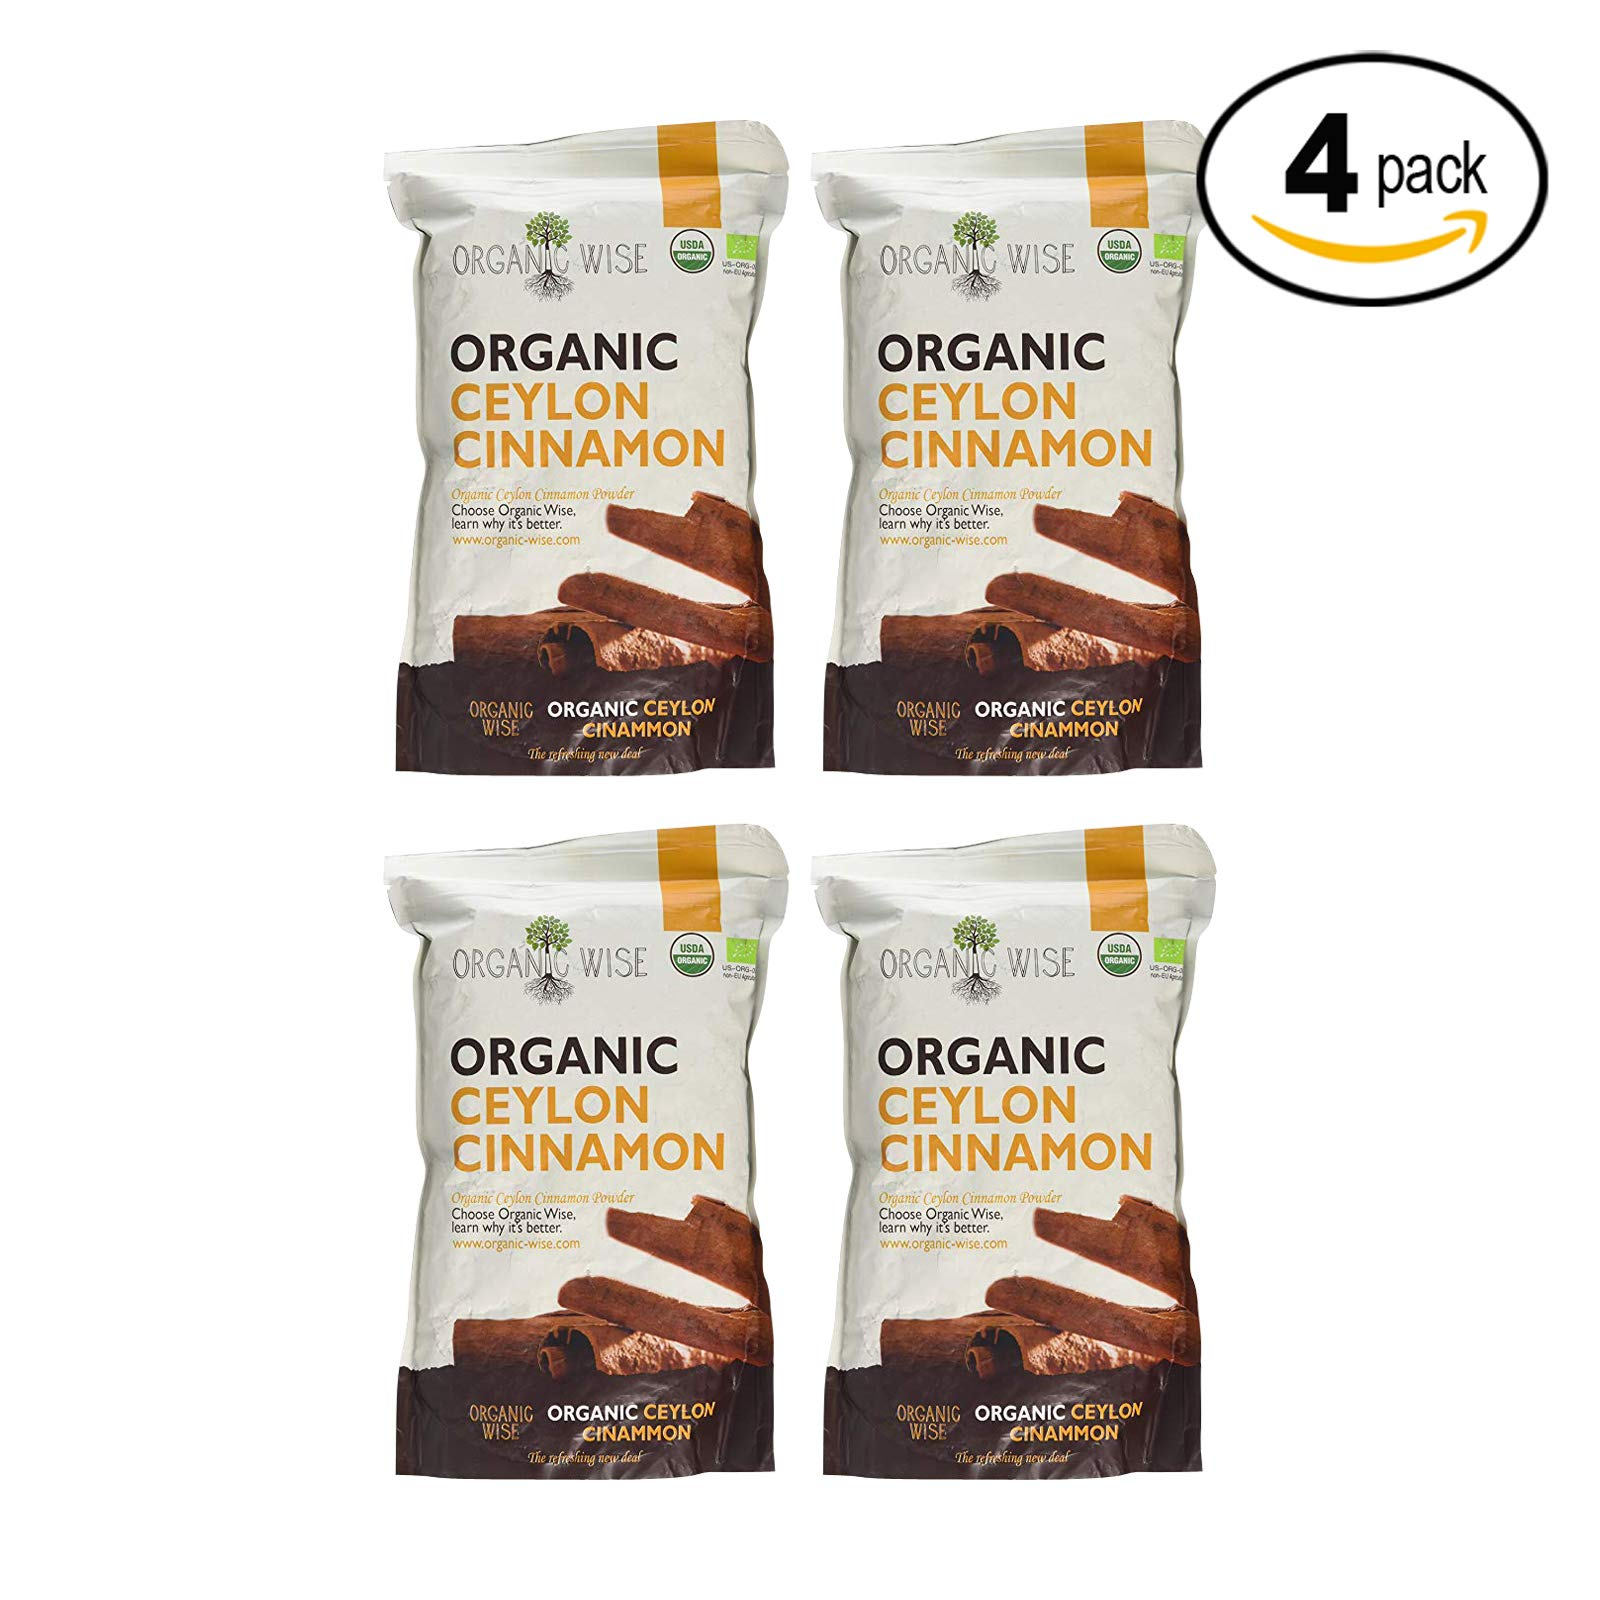 Organic Wise Ceylon Cinnamon Ground Powder, 1 lb-From a USDA Certified Organic Farm and Packed In The USA-4 Pack Bundle